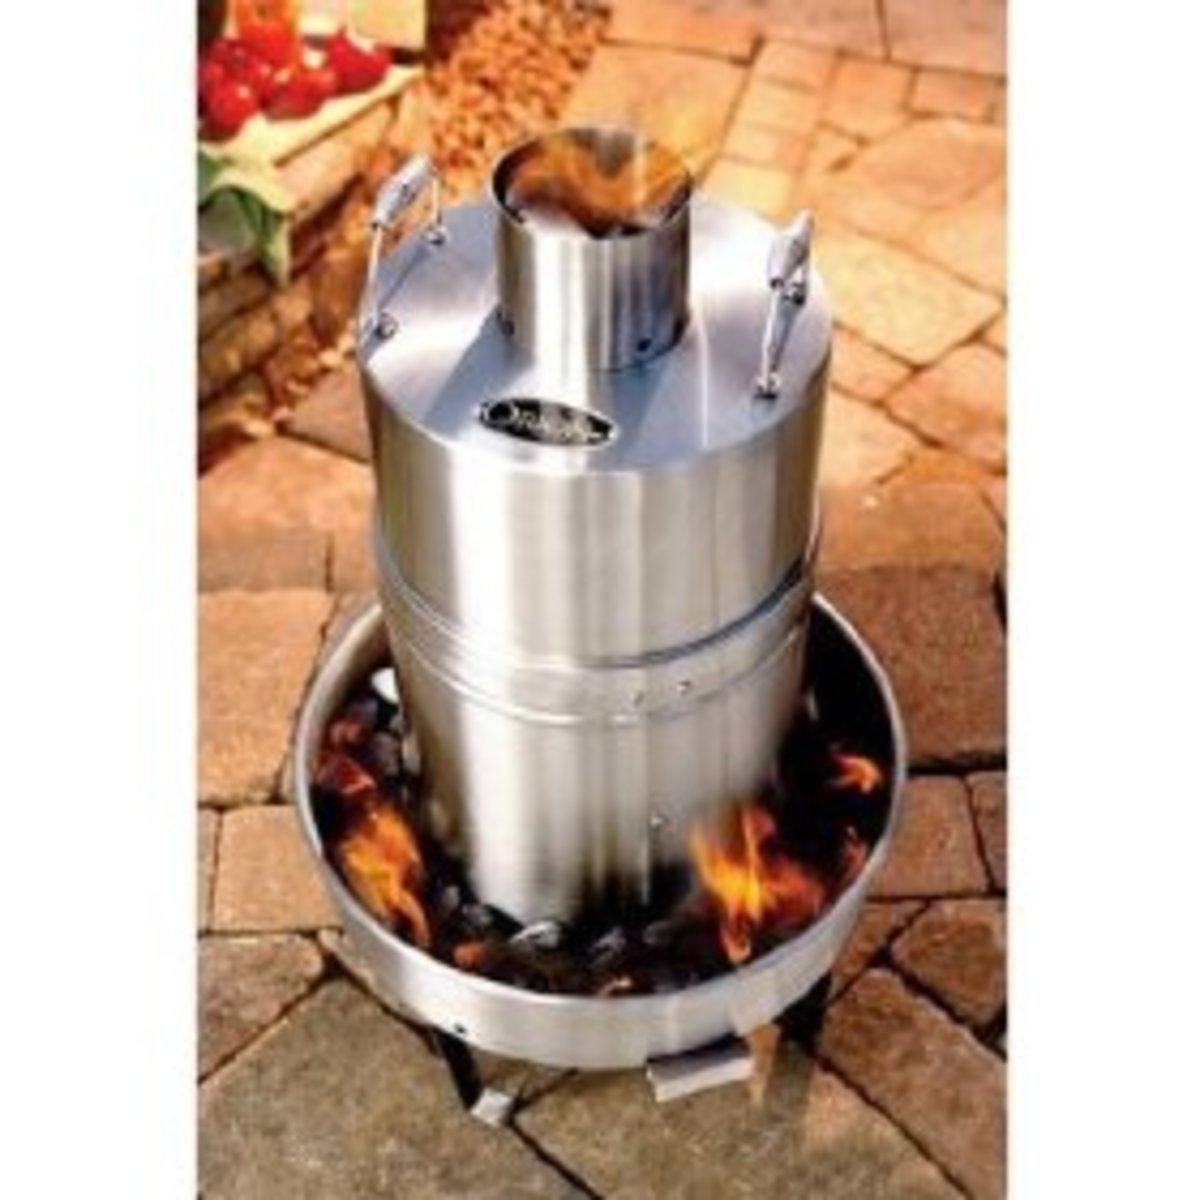 Orion Cooker and Smoker